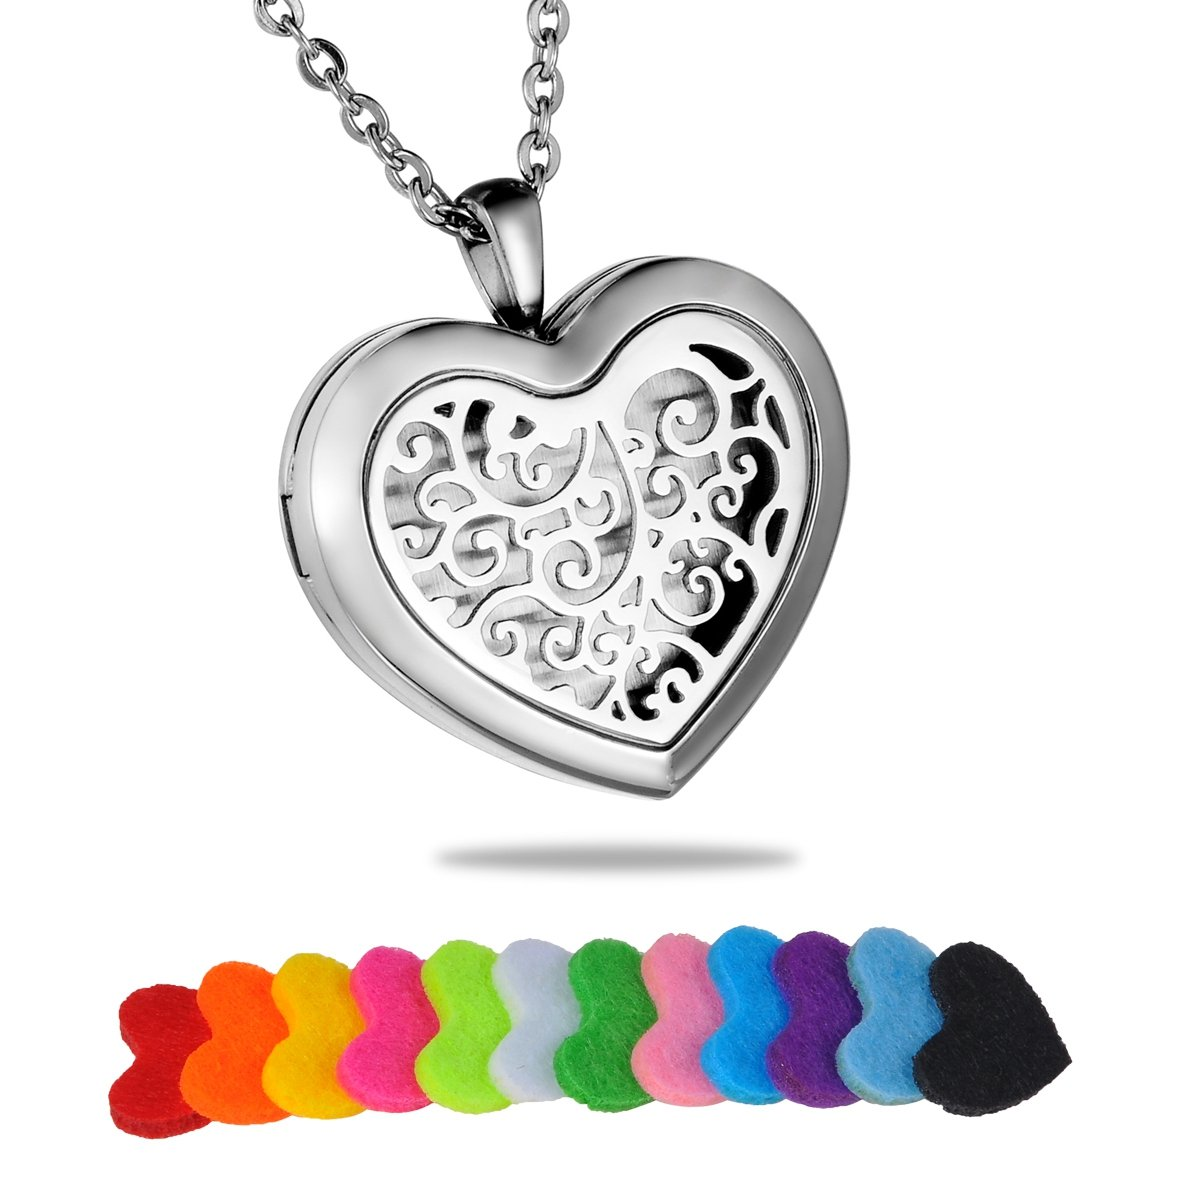 HooAMI Retro Filigree Heart Aromatherapy Essential Oil Diffuser Necklace Locket Pendant with Engraving